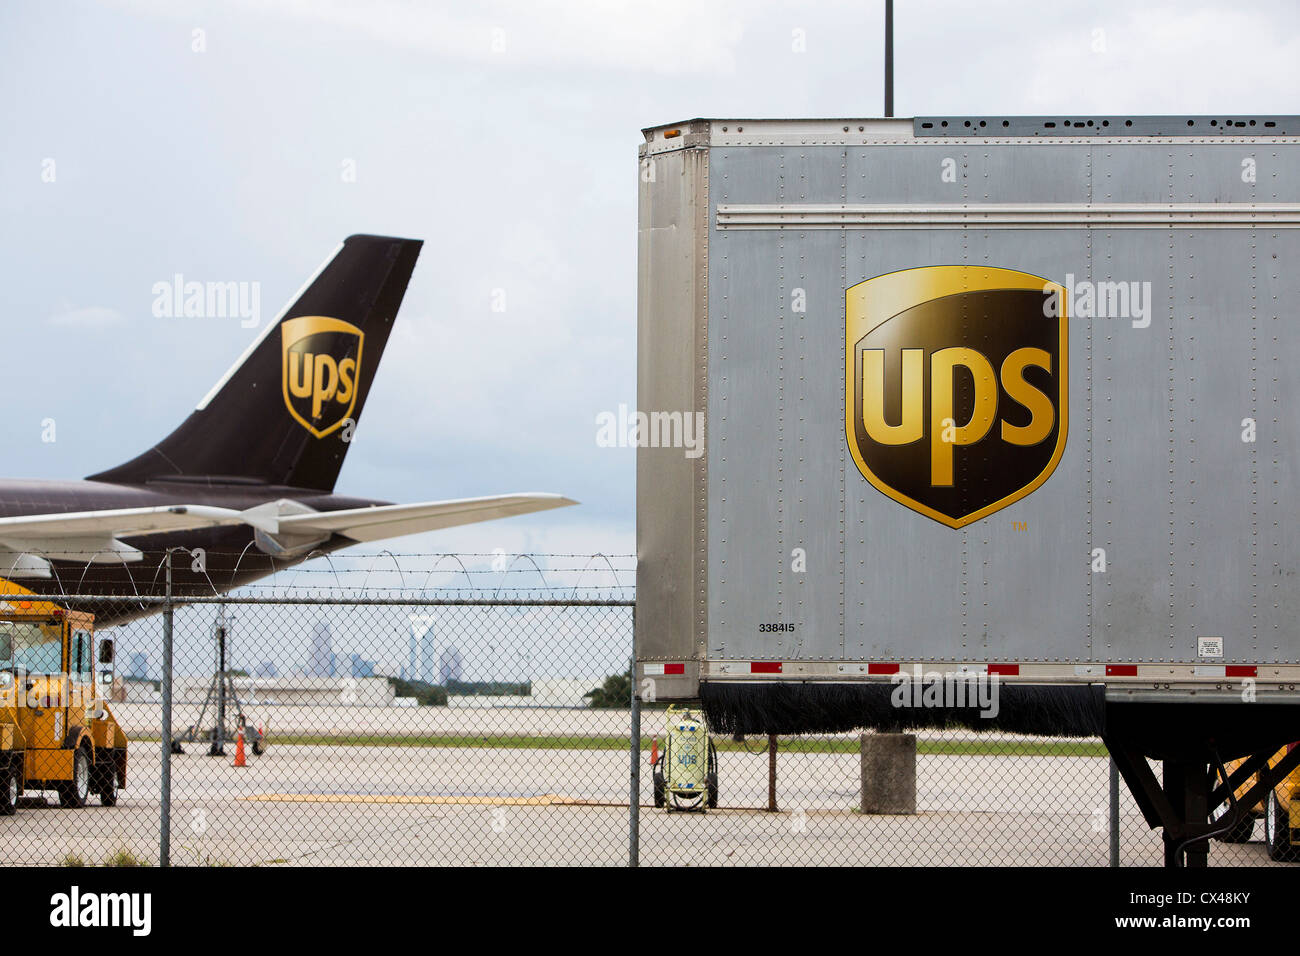 A United Parcel Service (UPS) cargo airplane outside of a sorting facility.  - Stock Image